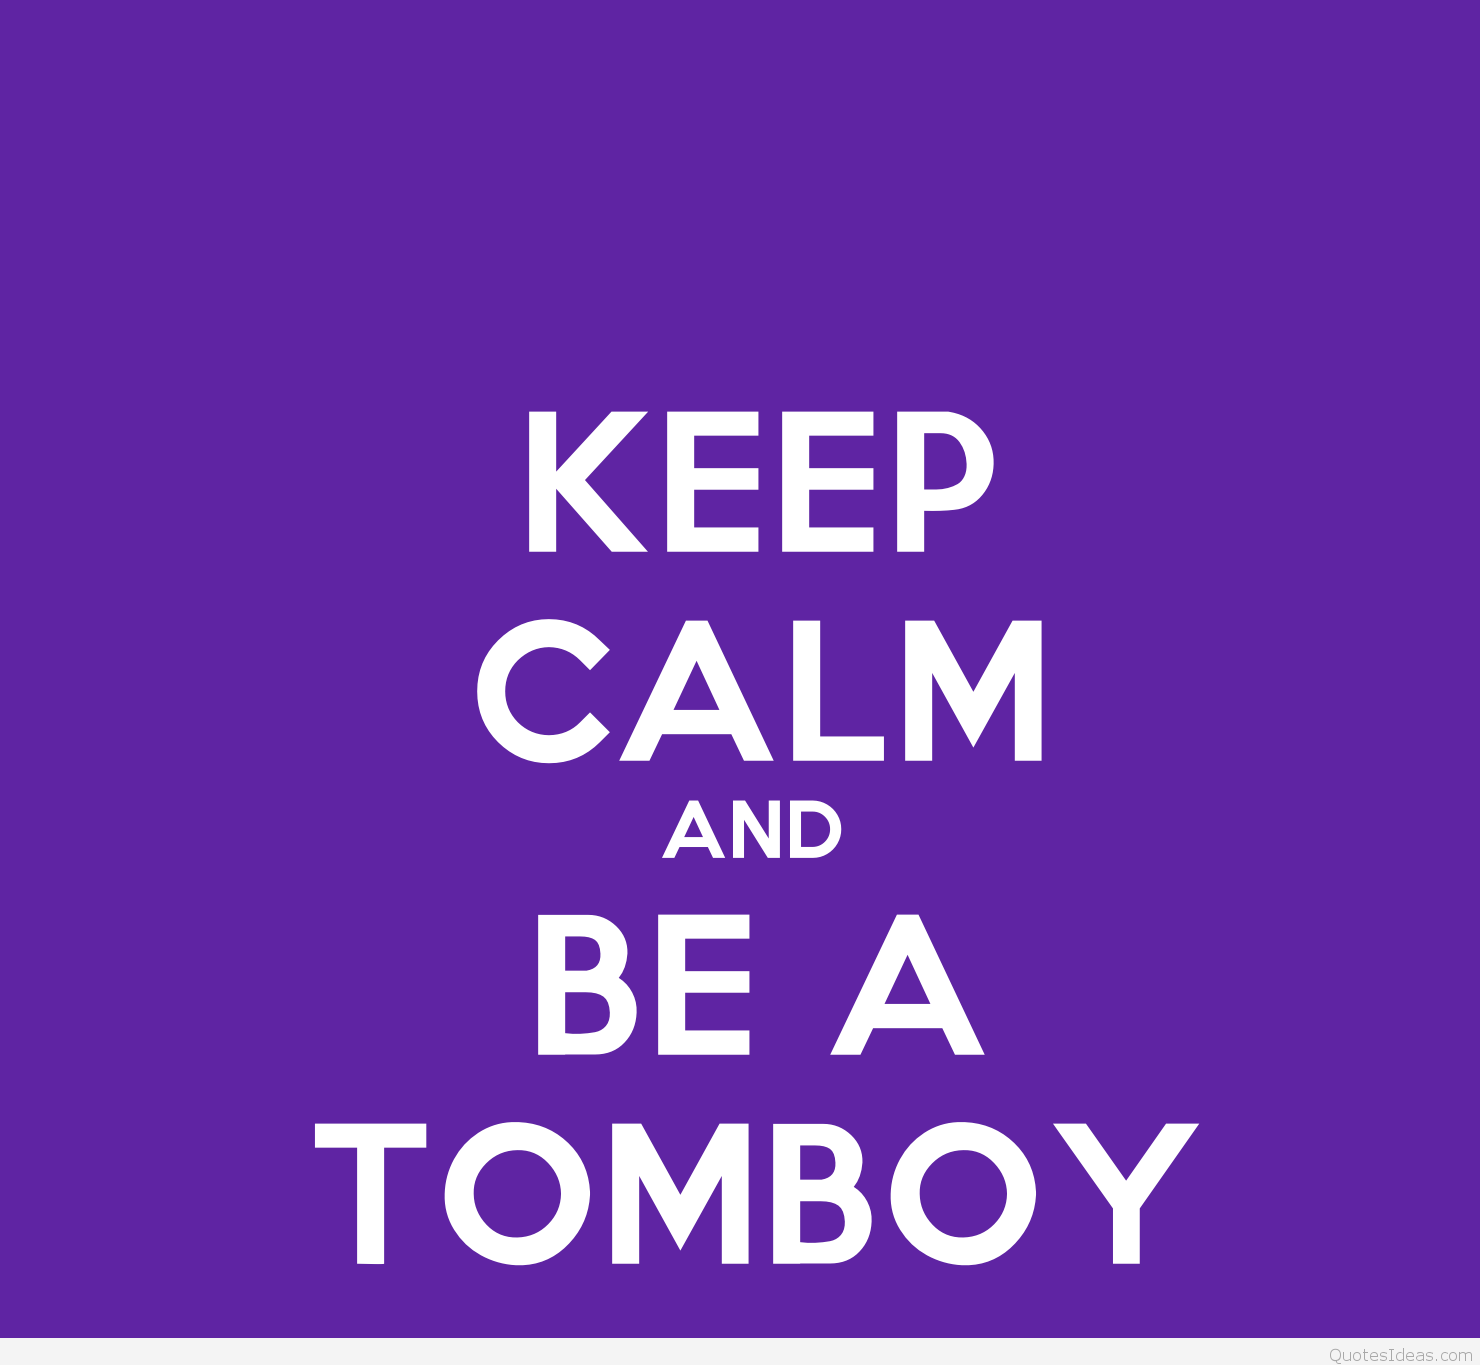 Download Tomboy Wallpaper Gallery